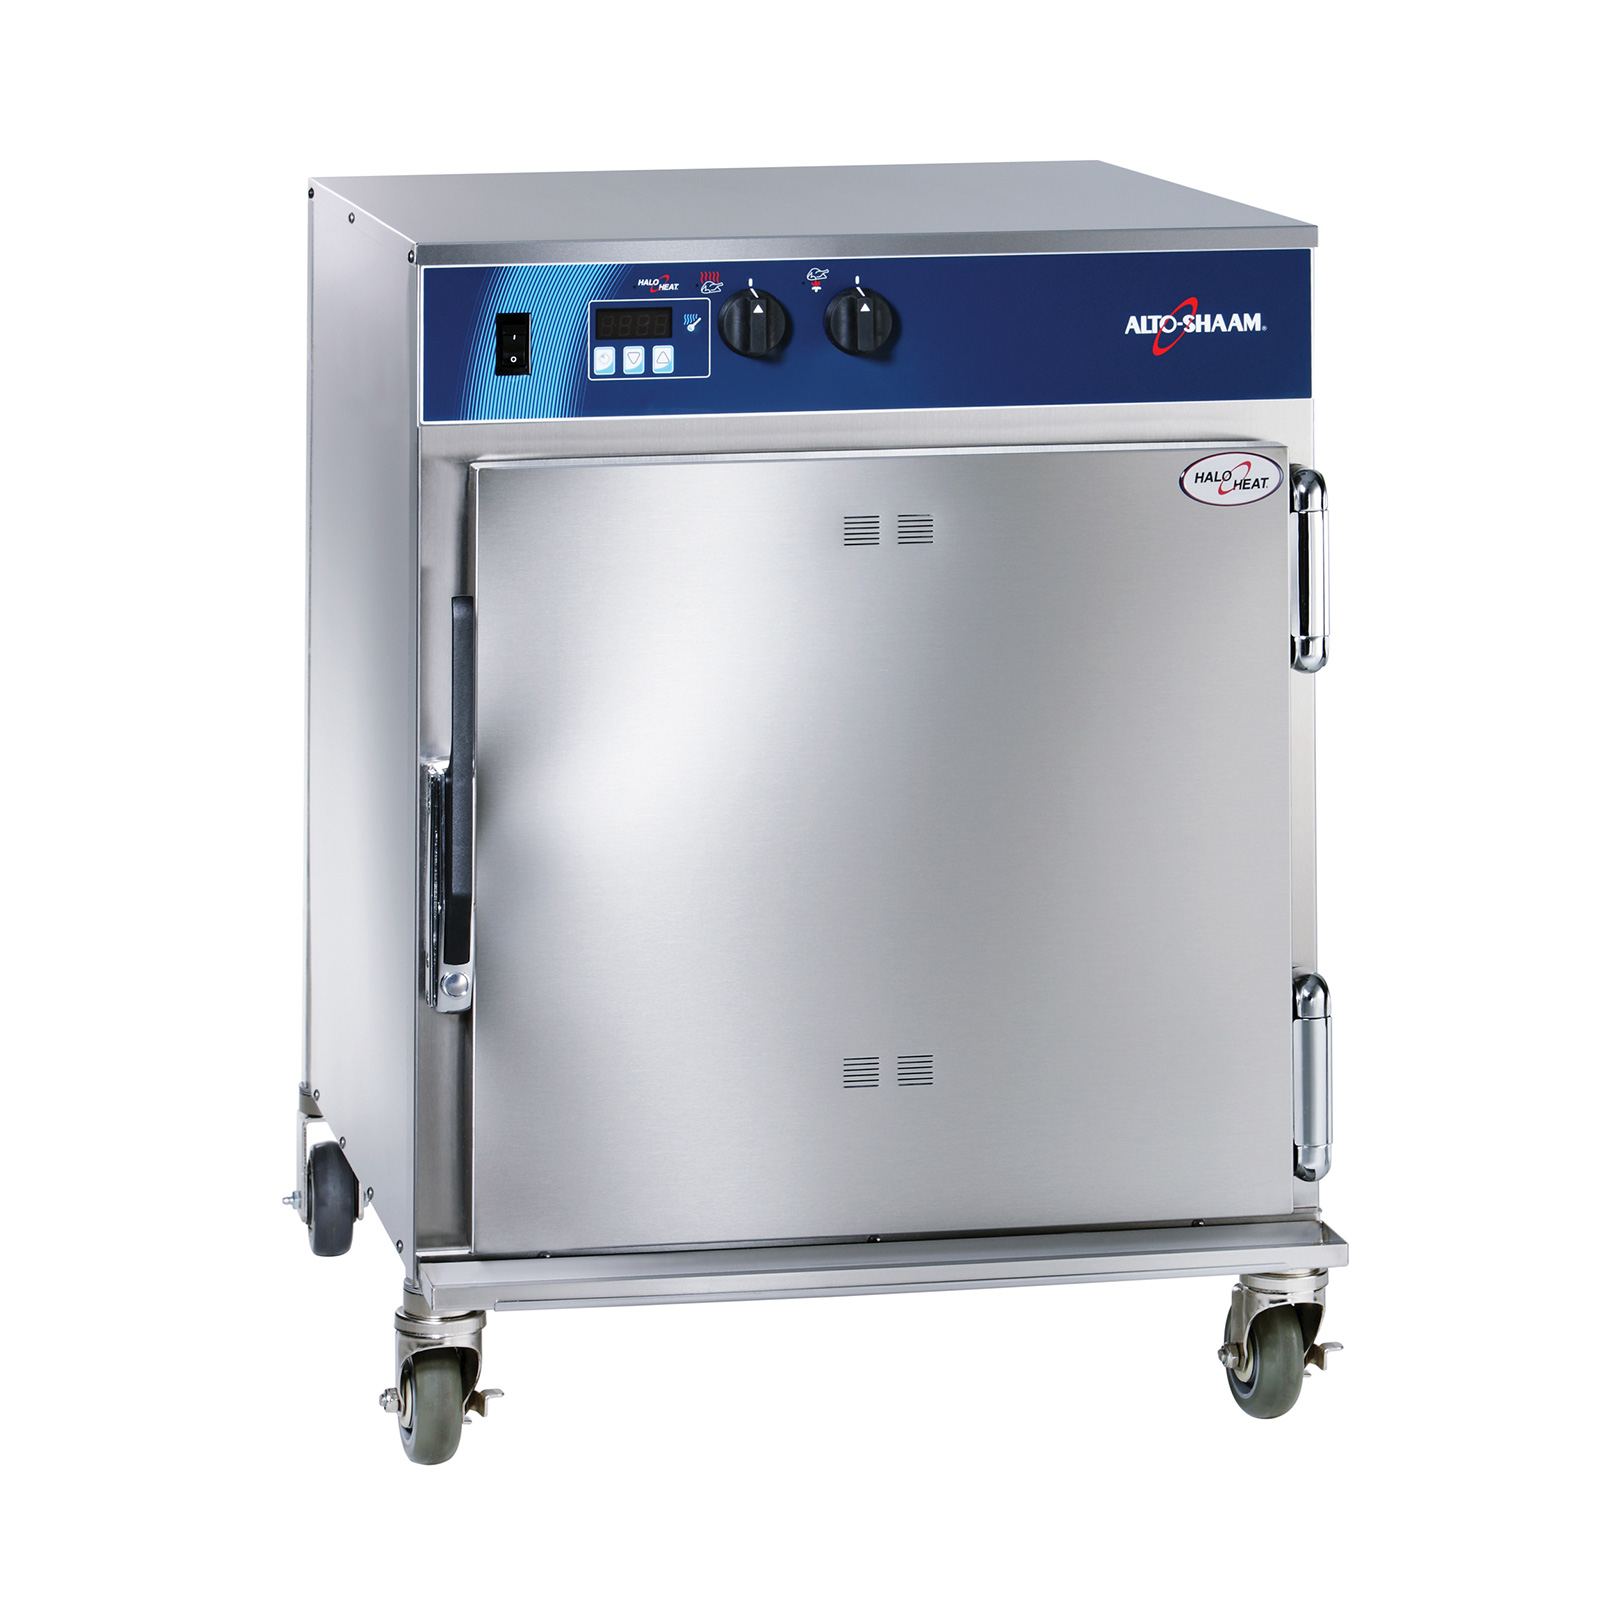 Alto-Shaam 750-TH/II cabinet, cook / hold / oven